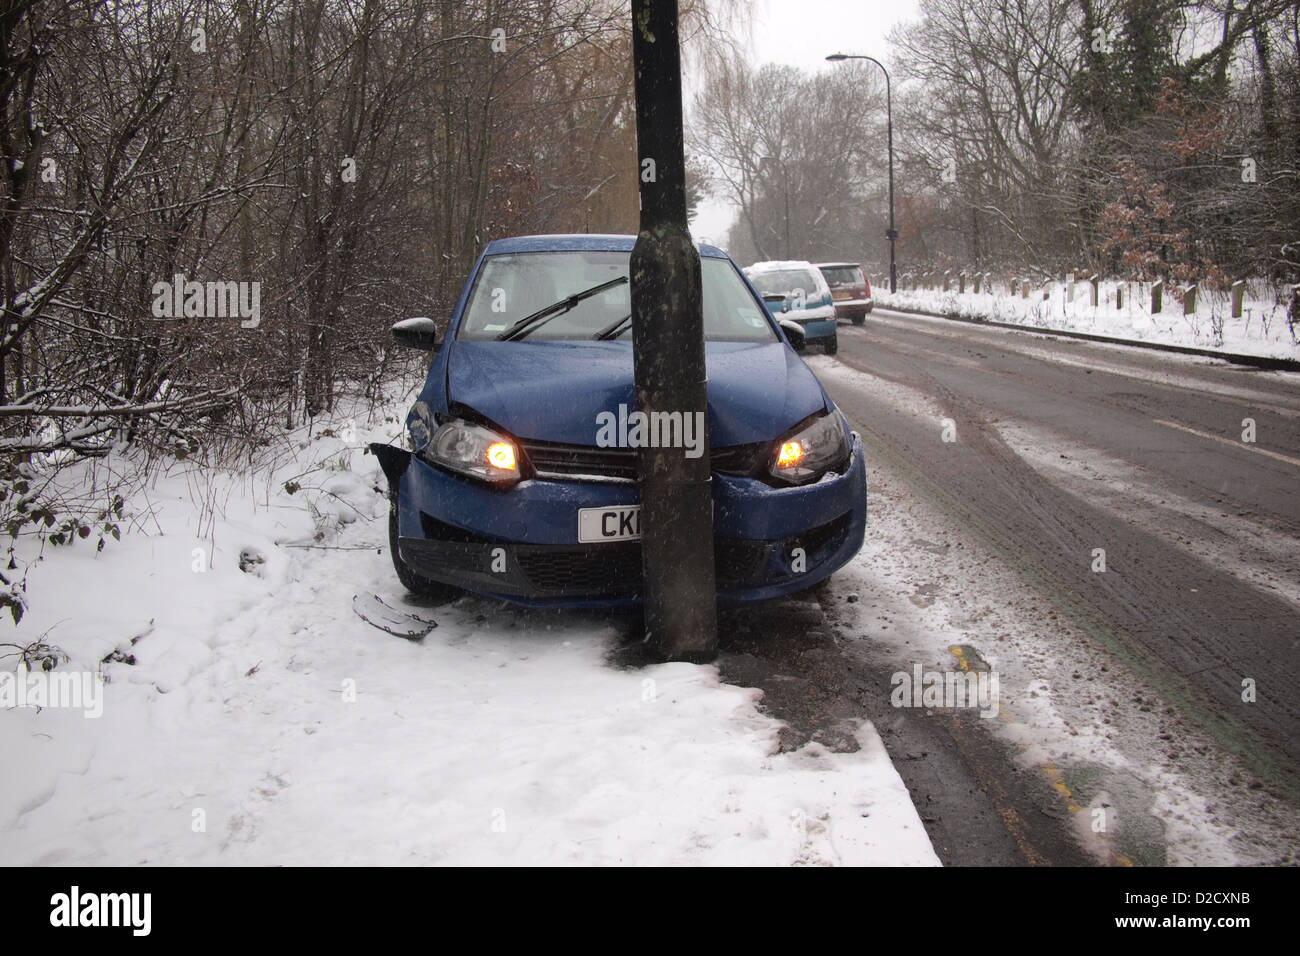 car crash accident in winter snow London UK england - Stock Image